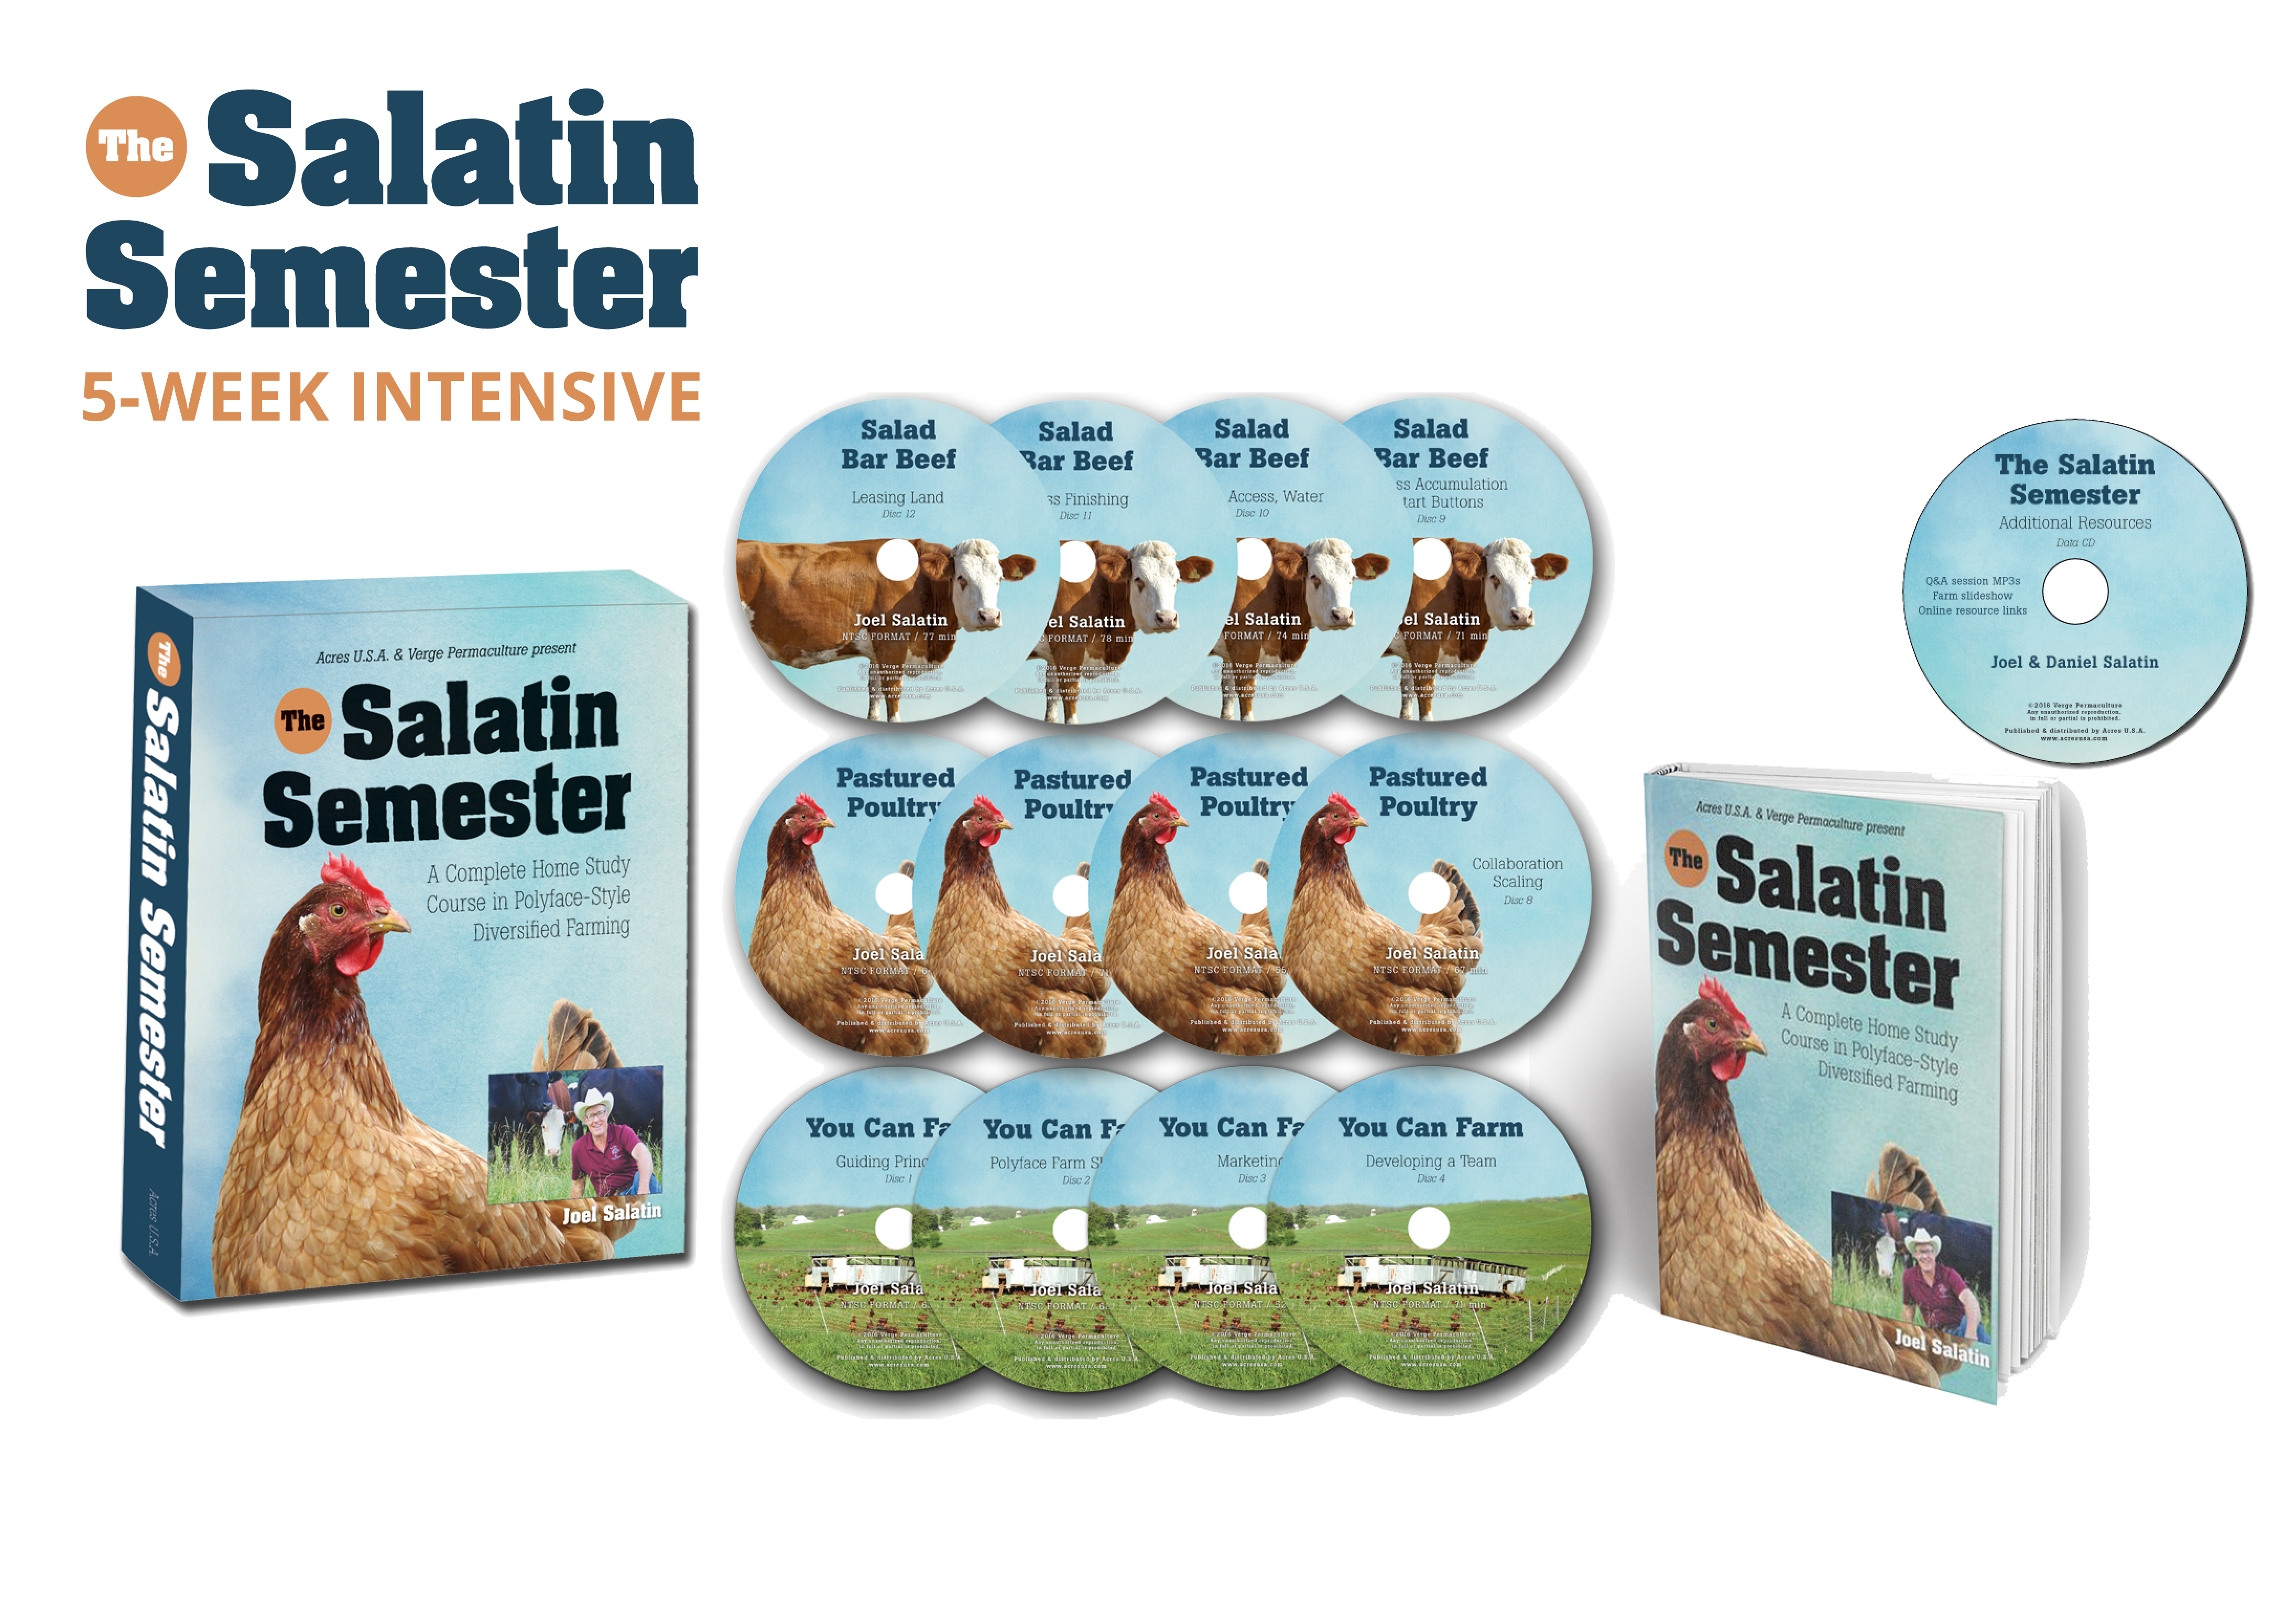 The Salatin Semester 5-Week Intensive: Includes Live Sessions with Joel Salatin (Online)